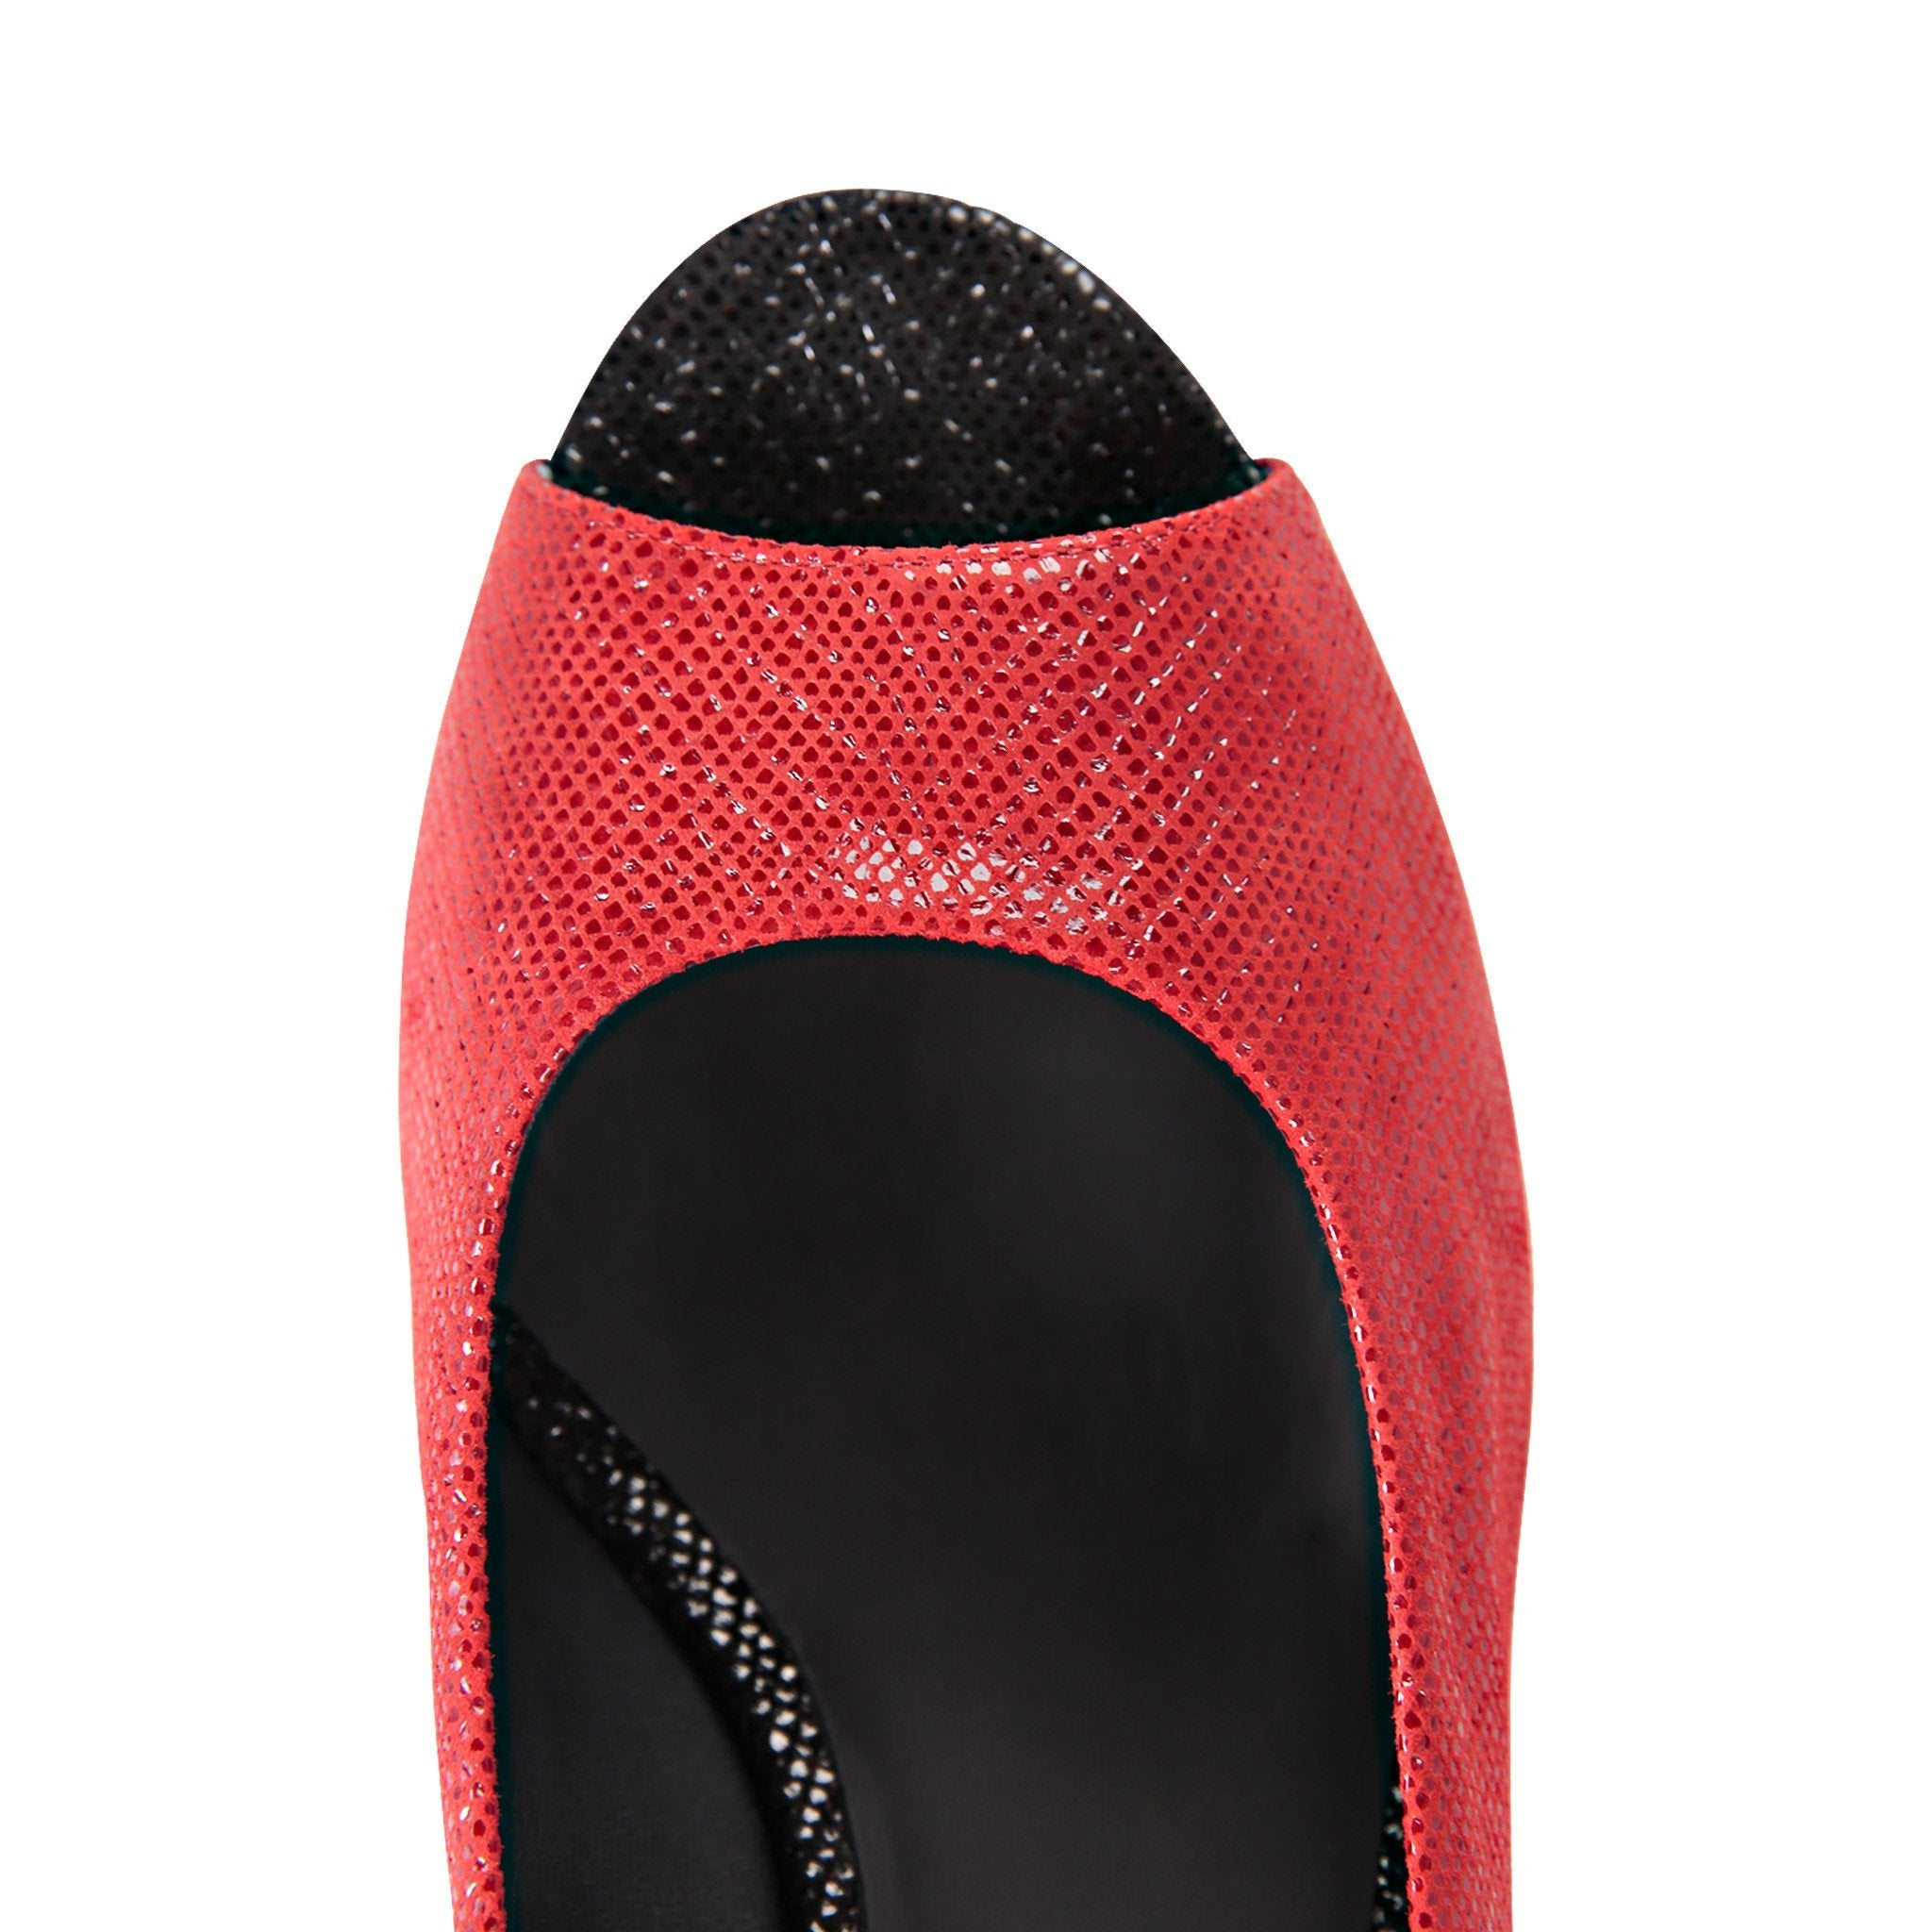 SARDINIA - Karung Rosso + Karung Nero, VIAJIYU - Women's Hand Made Sustainable Luxury Shoes. Made in Italy. Made to Order.